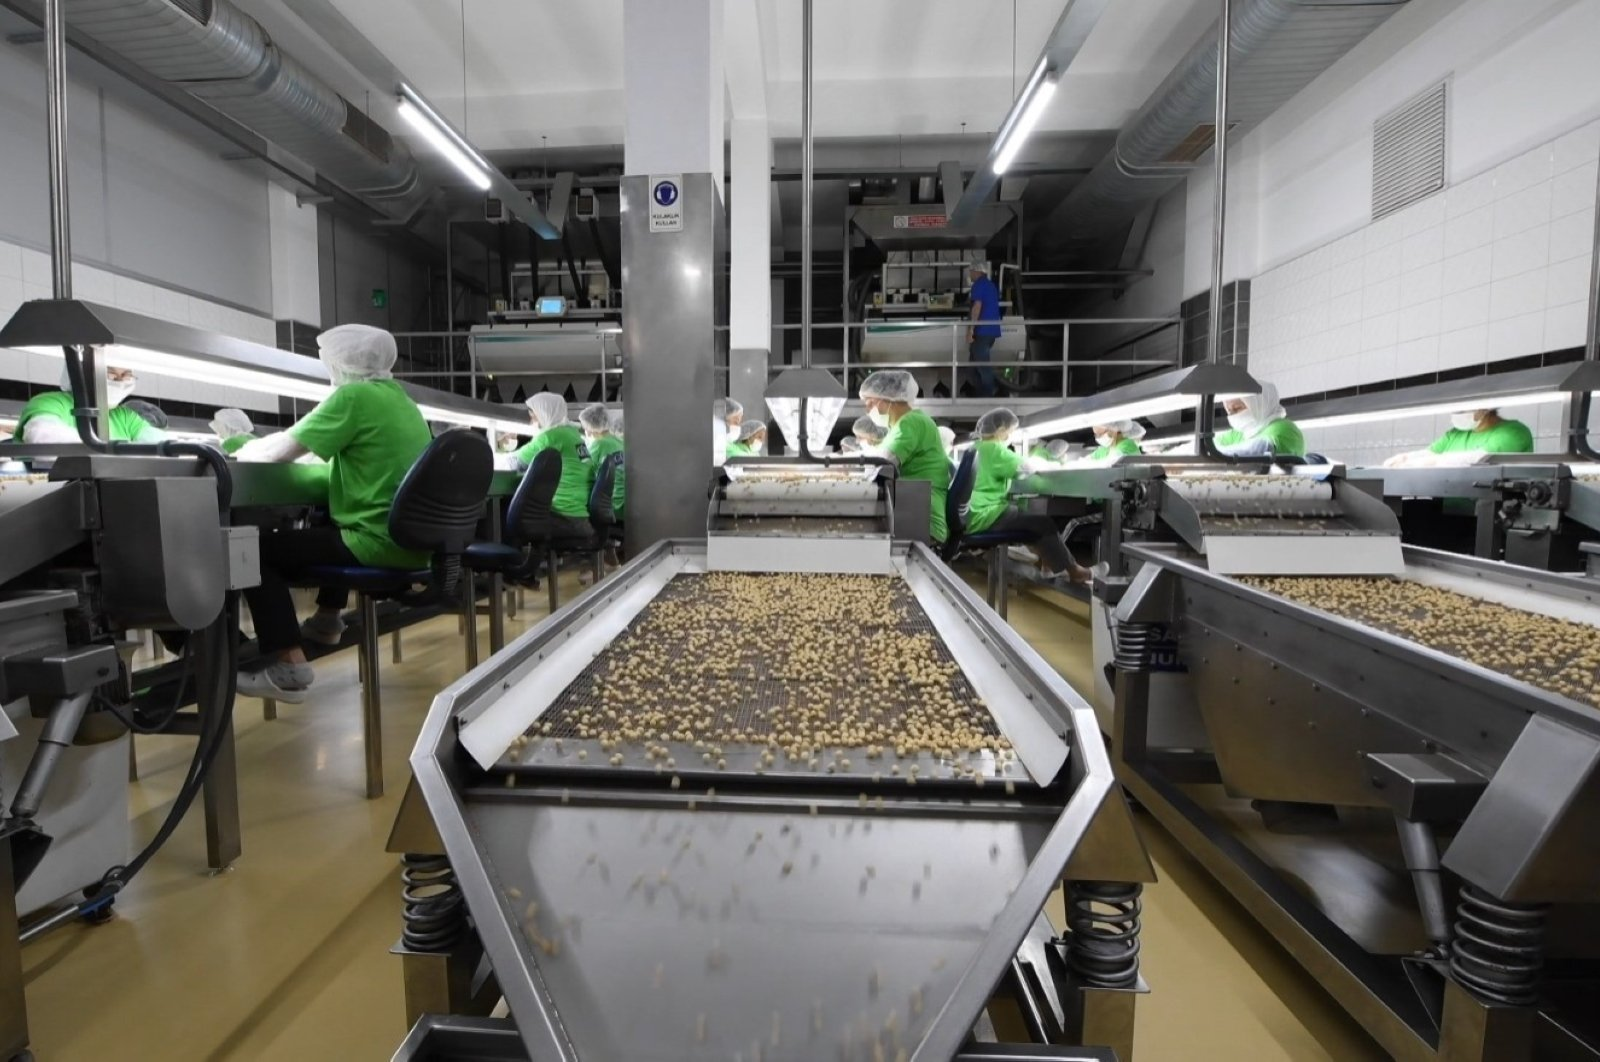 Workers are seen at a hazelnut processing plant in the Black Sea province of Ordu in northern Turkey, Jan. 6, 2021. (IHA Photo)